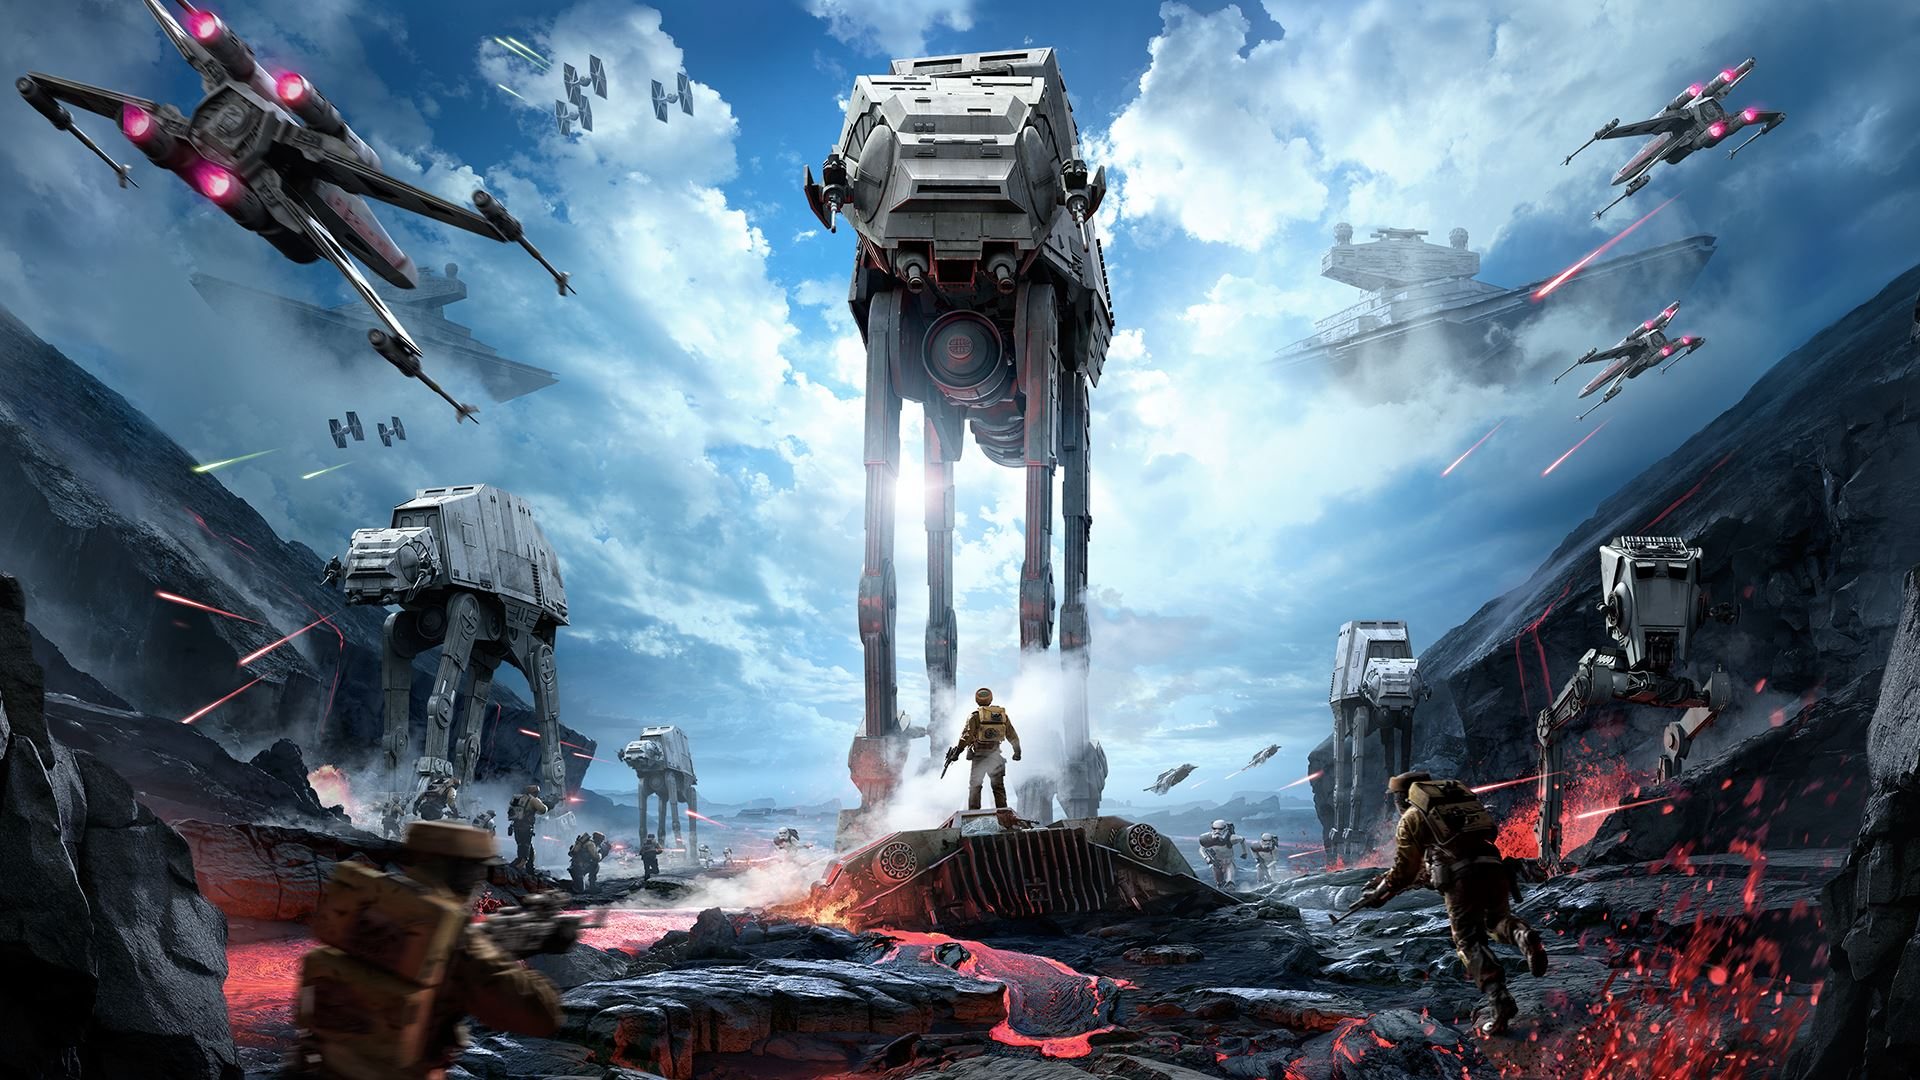 Star Wars Battlefront Beta Is Now Available For Xbox One